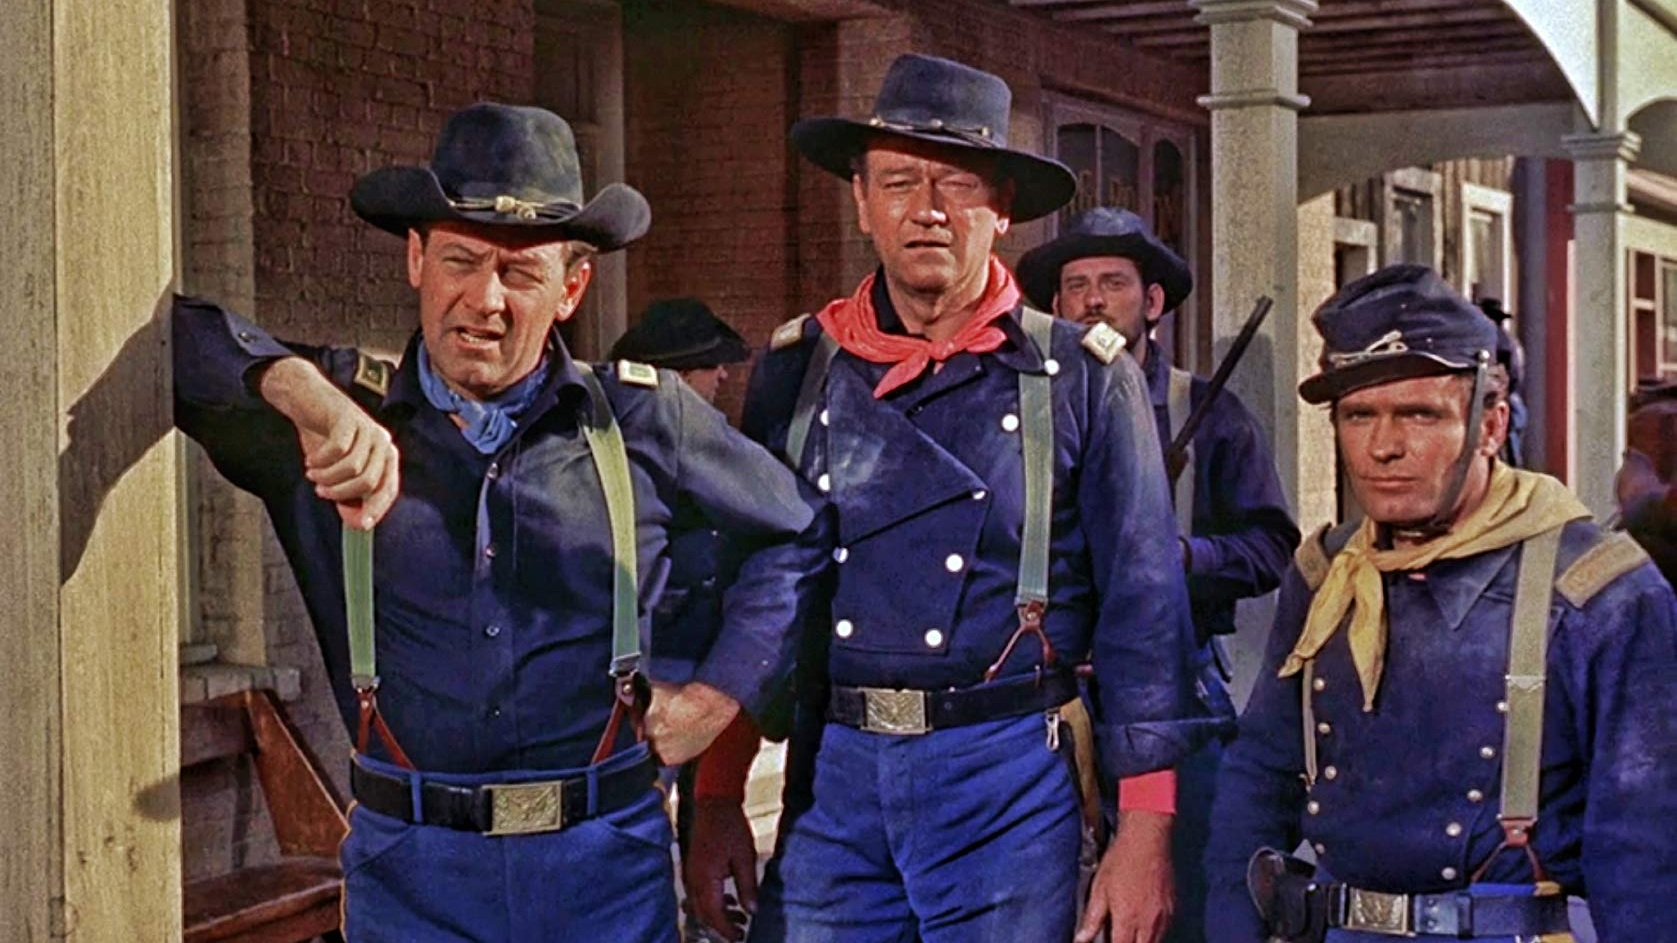 #9) The Horse Soldiers - (1959 - dir. John Ford)